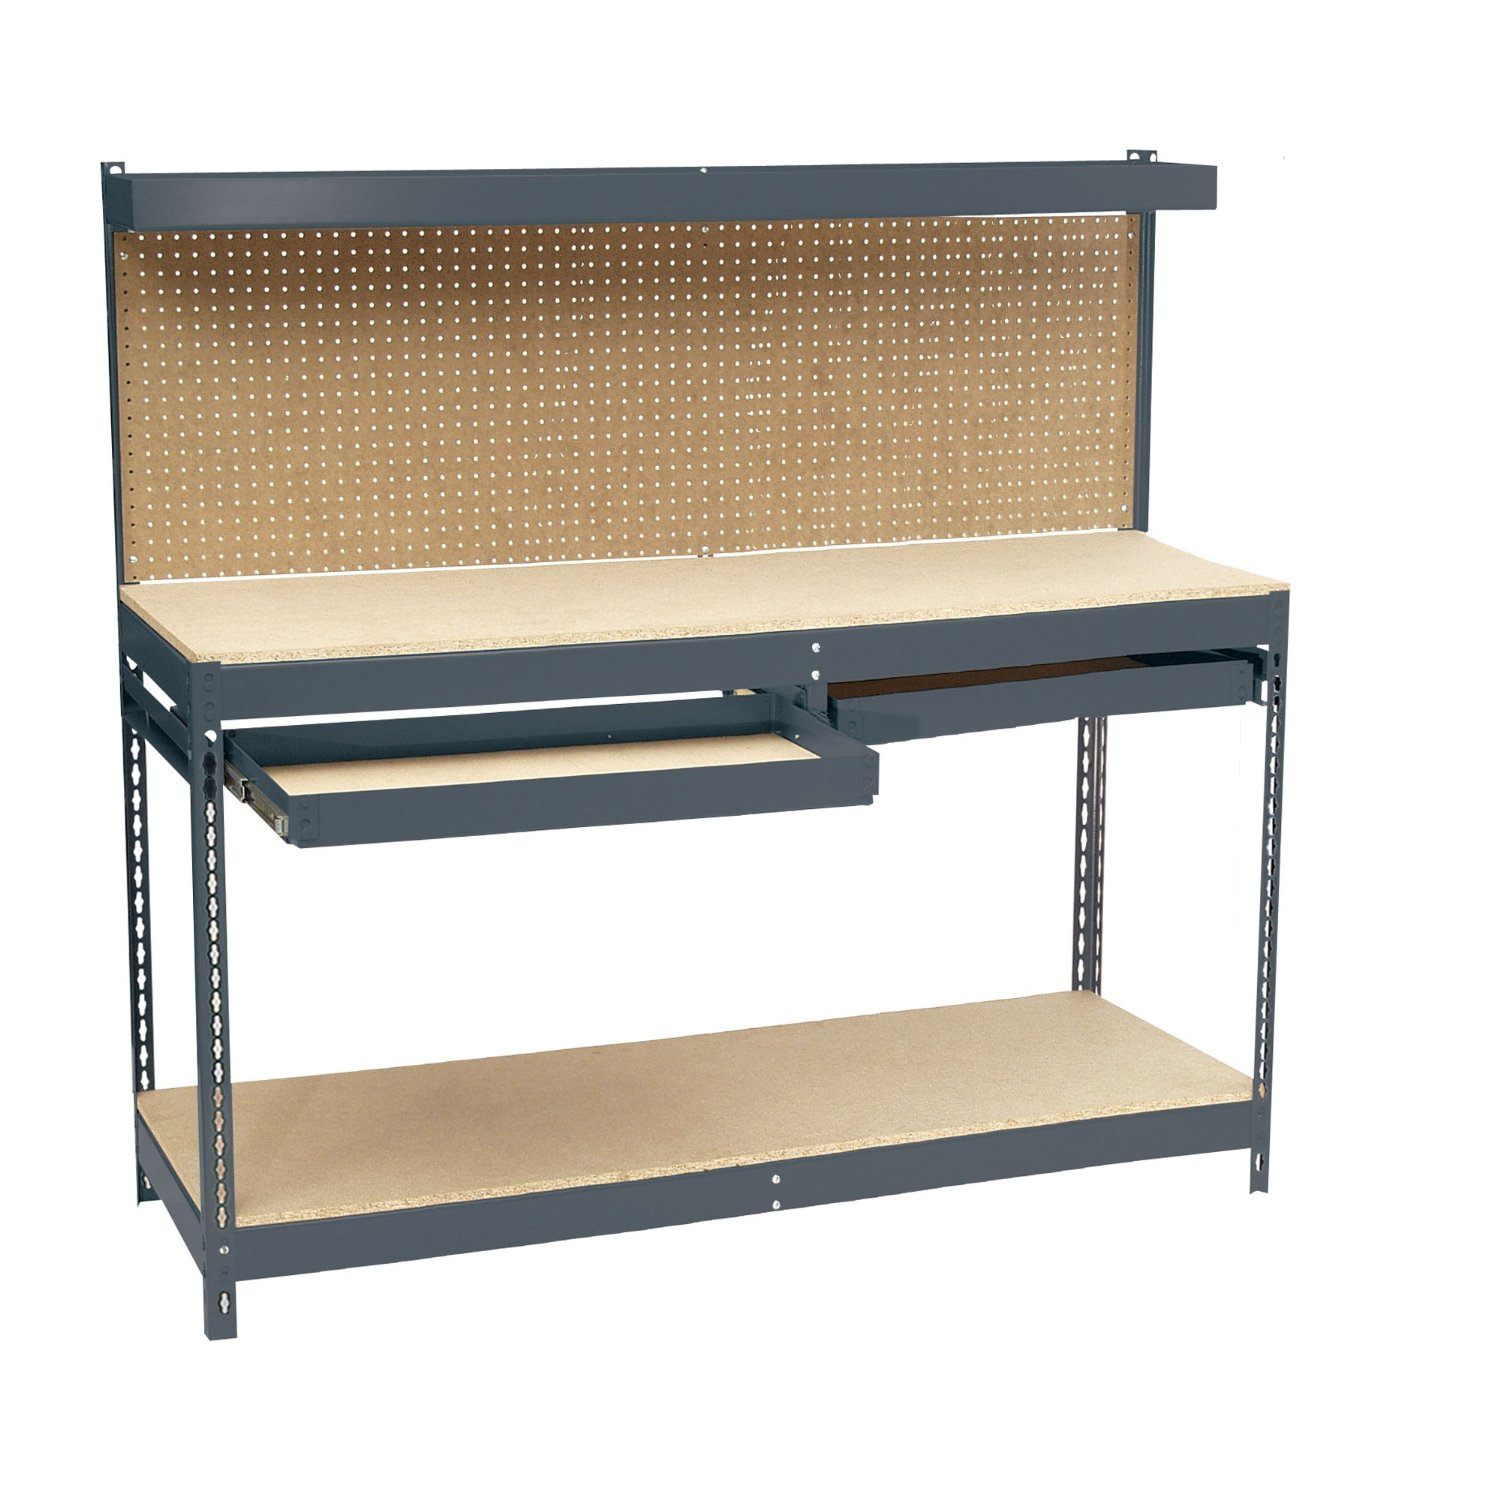 Use Edsal Shelving At Your Garage To Save Your Tools: Awesome Edsal Shelving With Hutch And Drawers Made Of Steel For Garage Furniture Ideas